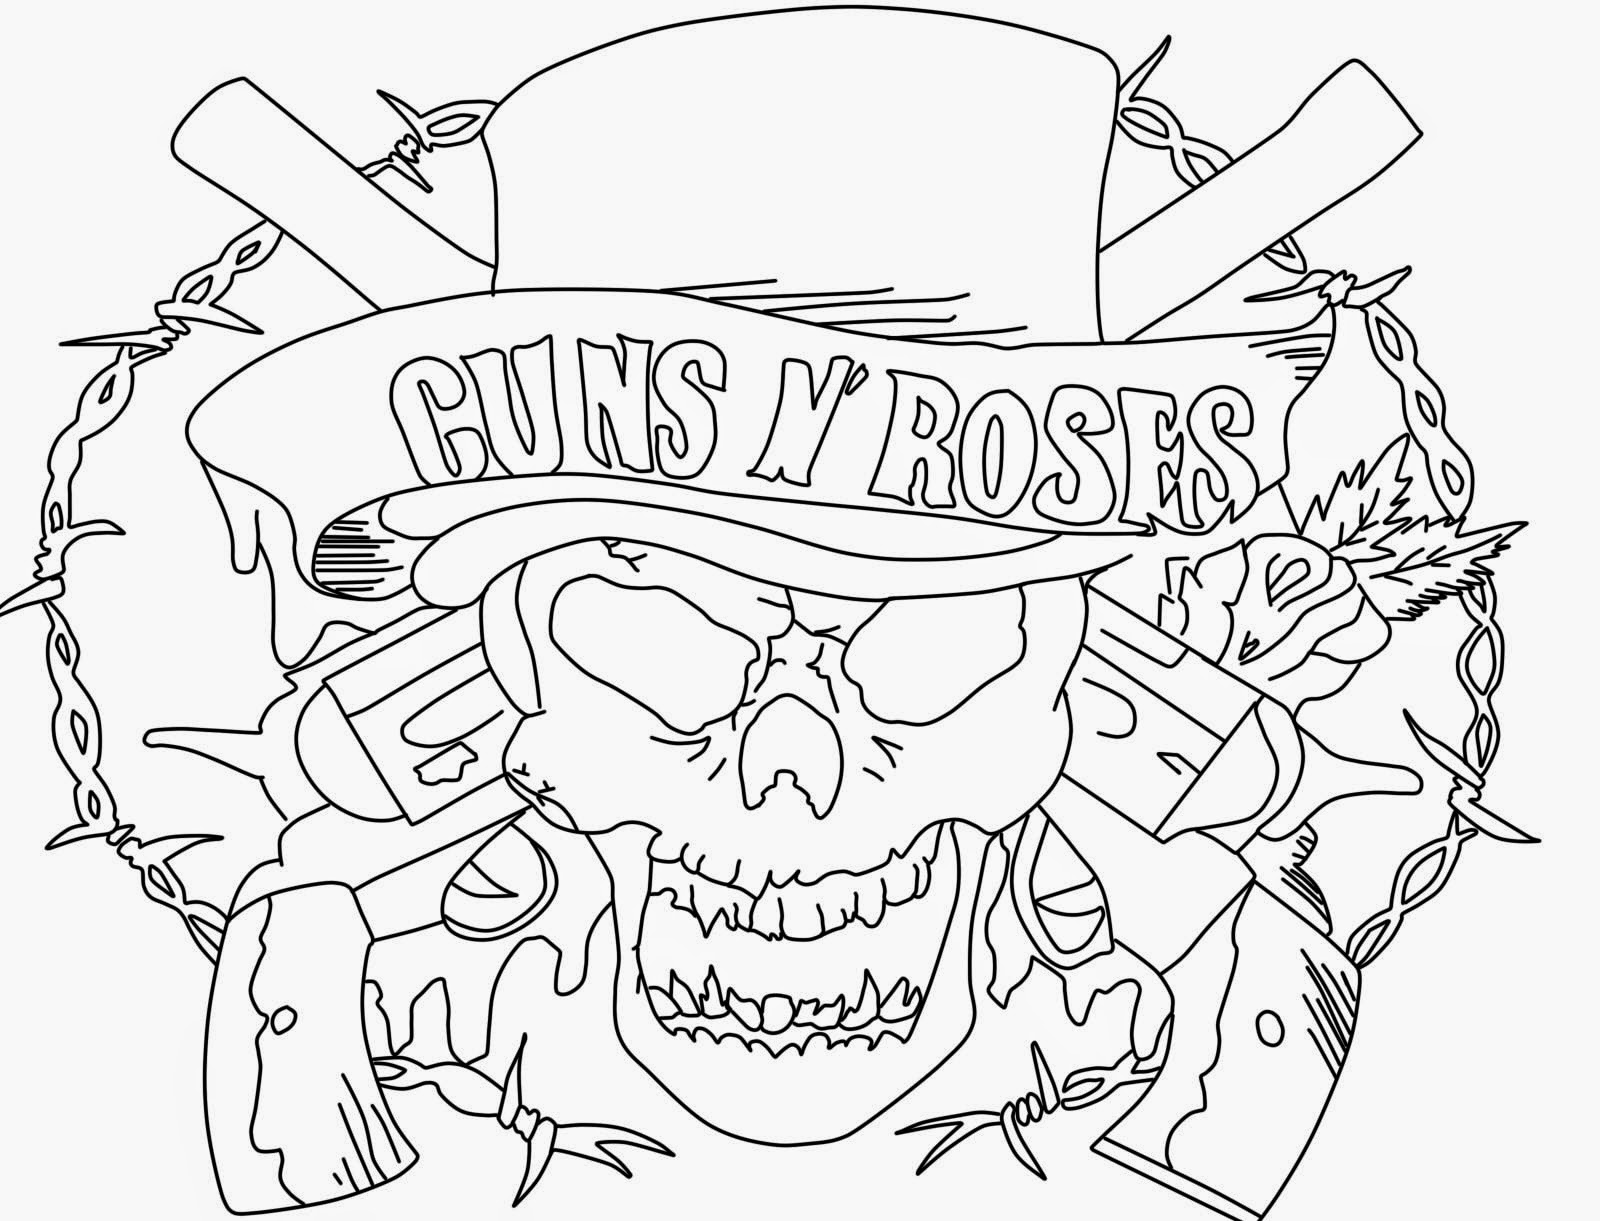 Guns And Roses Logos Coloring Coloring Pages